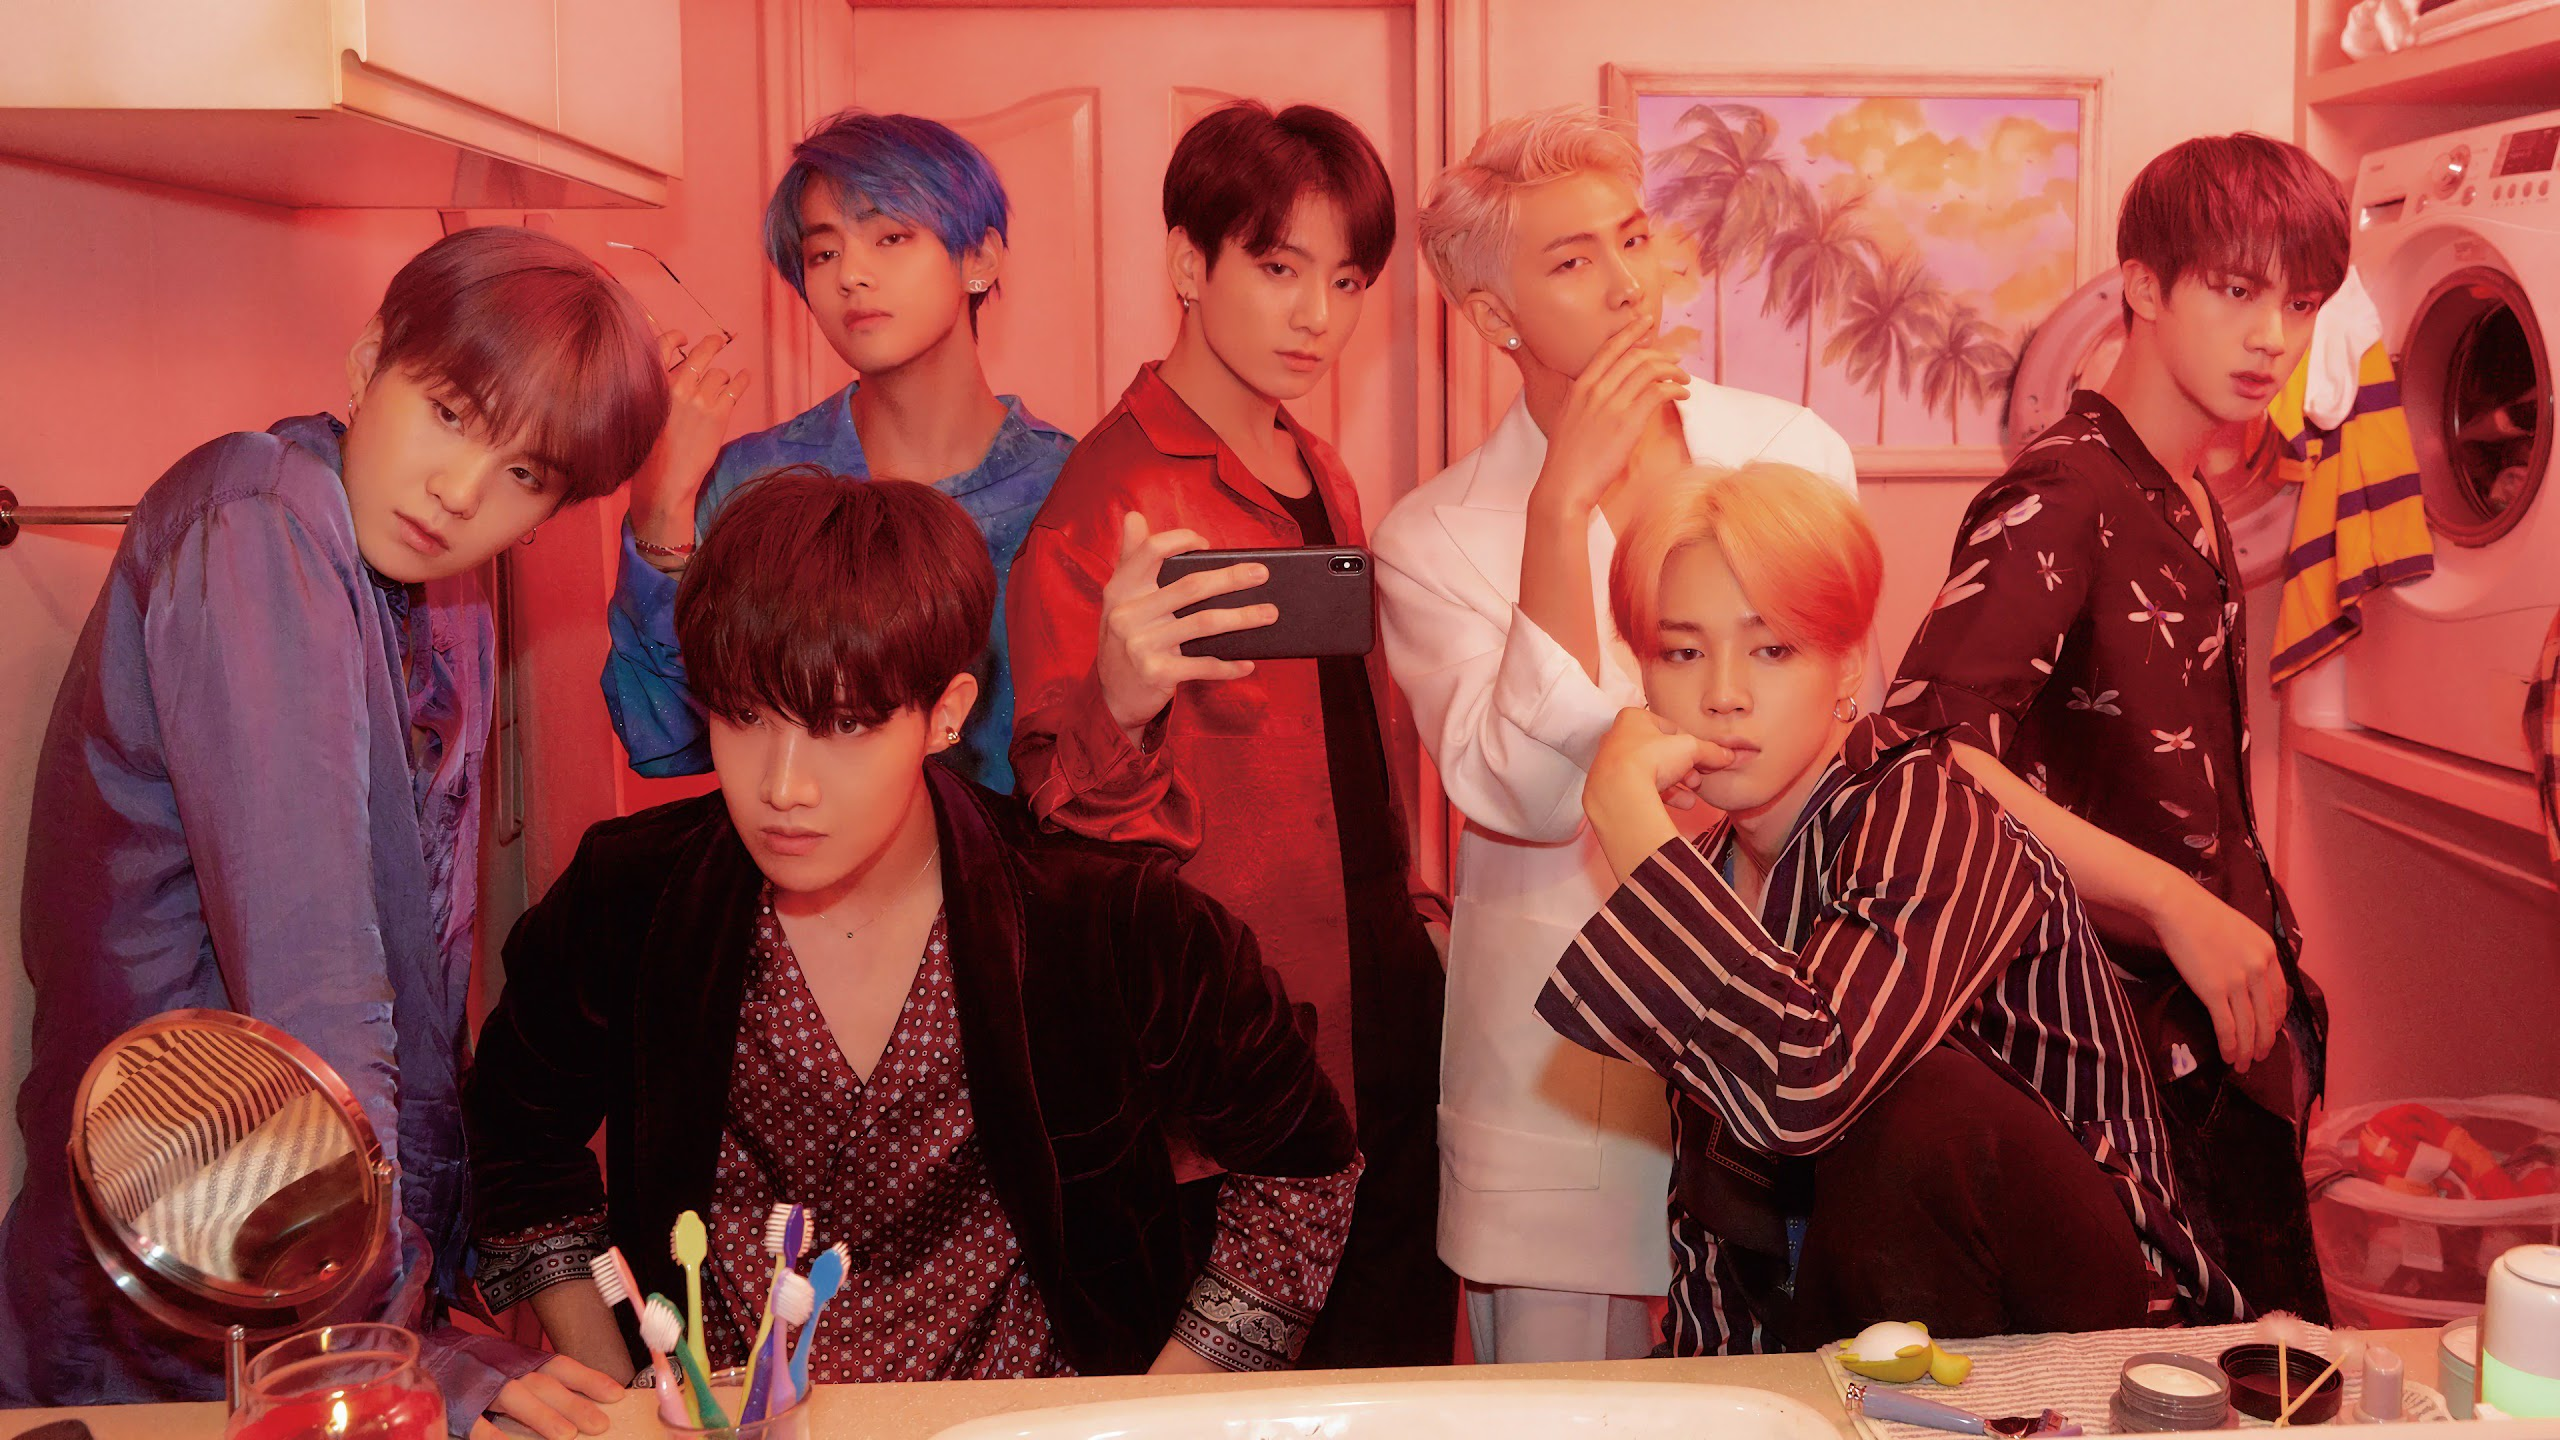 bts map of the soul persona members uhdpaper.com 4K 27